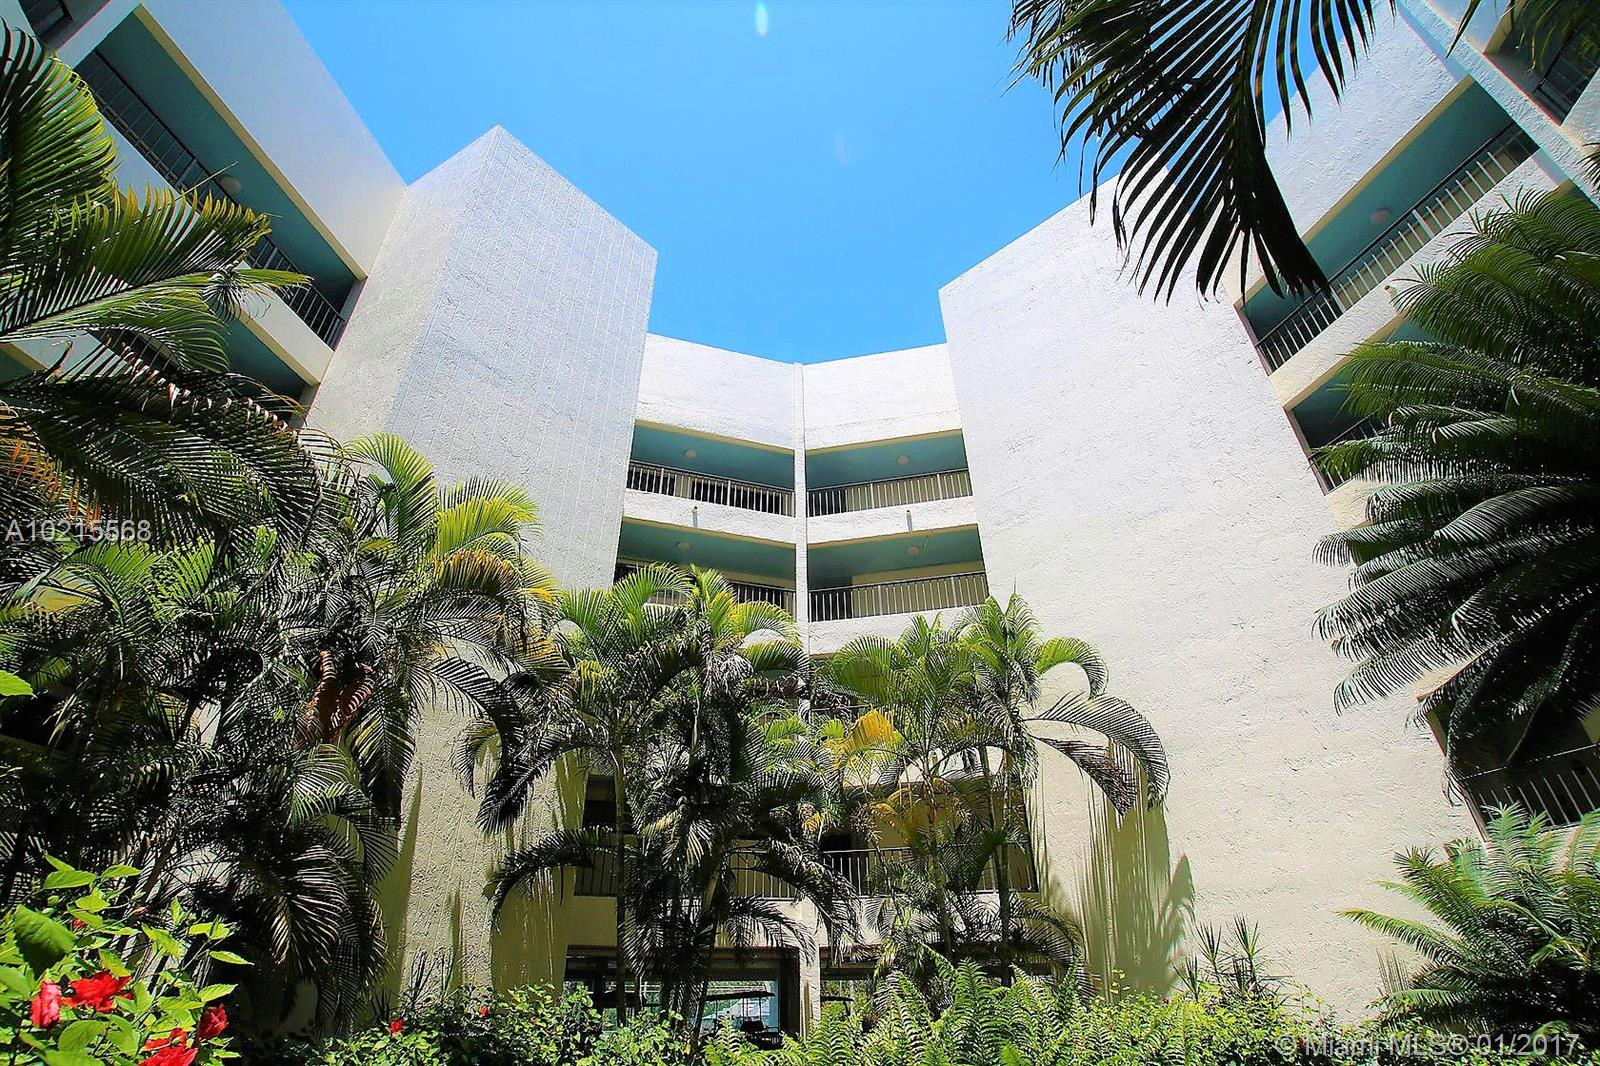 1530 Ocean bay dr-410 other-city---keys/islands/caribbean--fl-33037-a10215568-Pic29